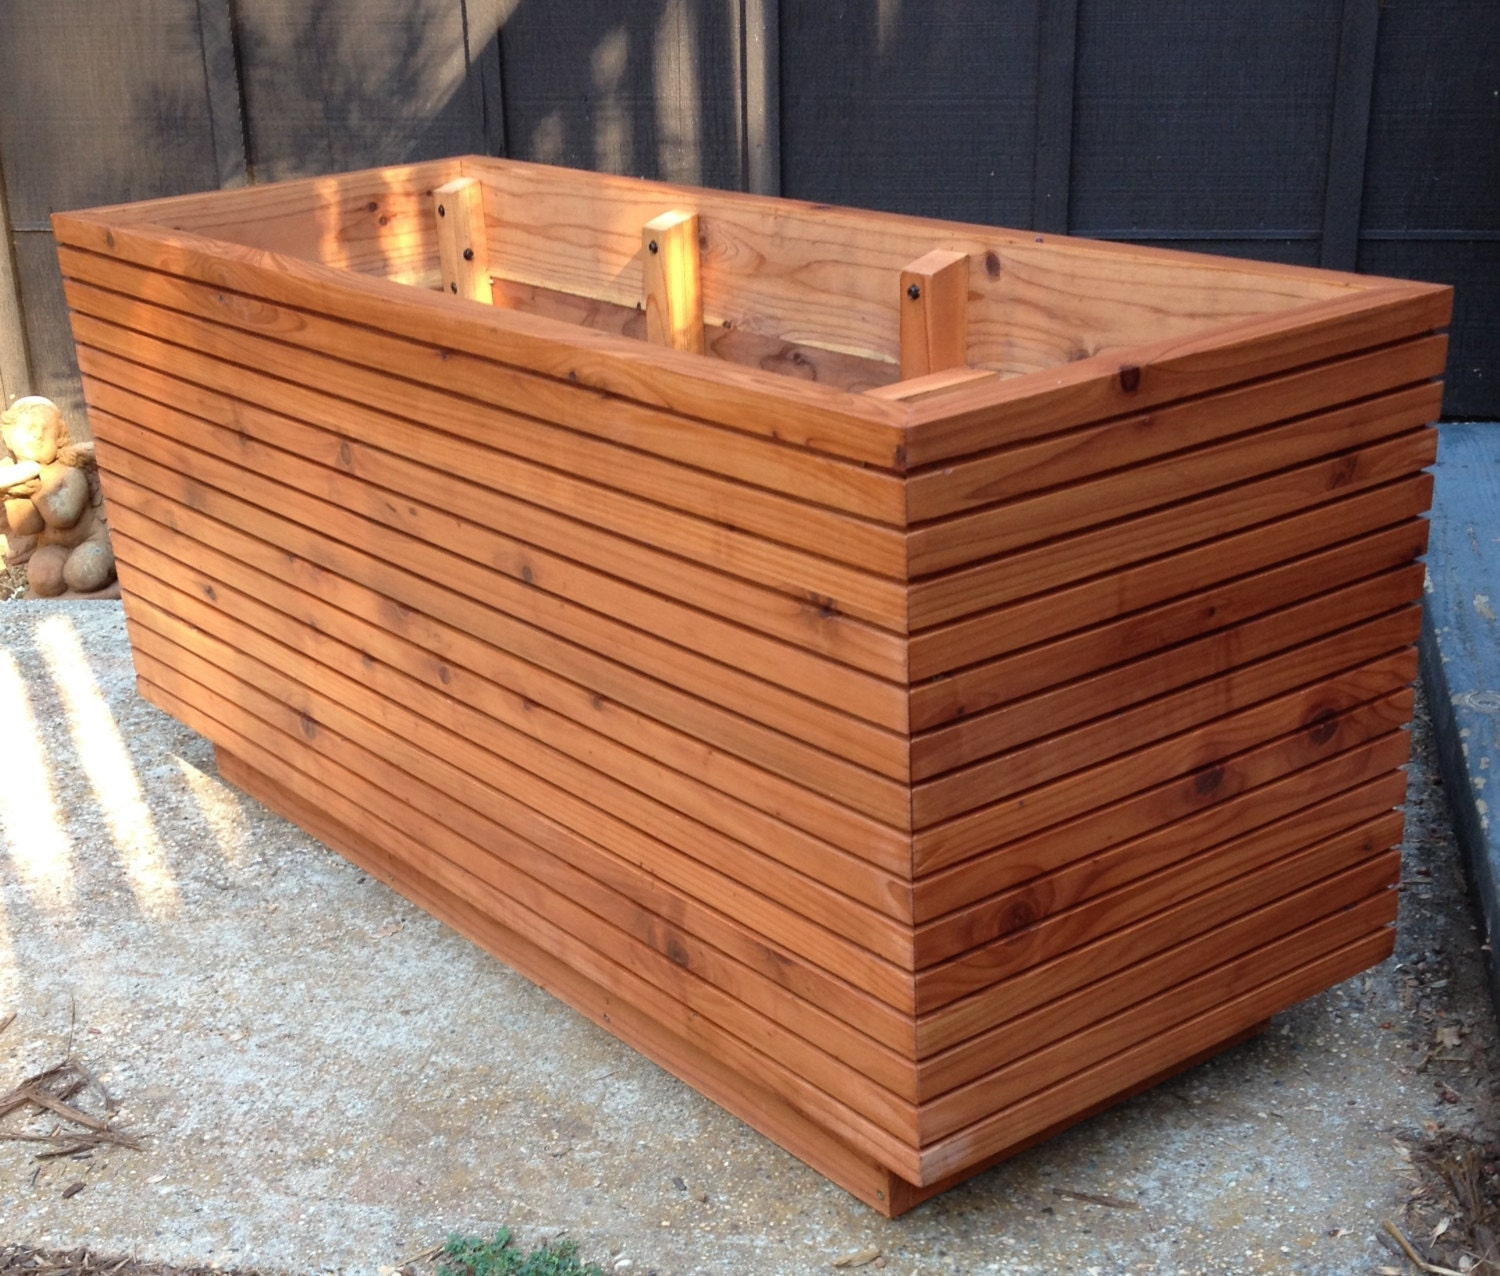 waterproof box and planters make s to how build planter wooden round a boxes description image